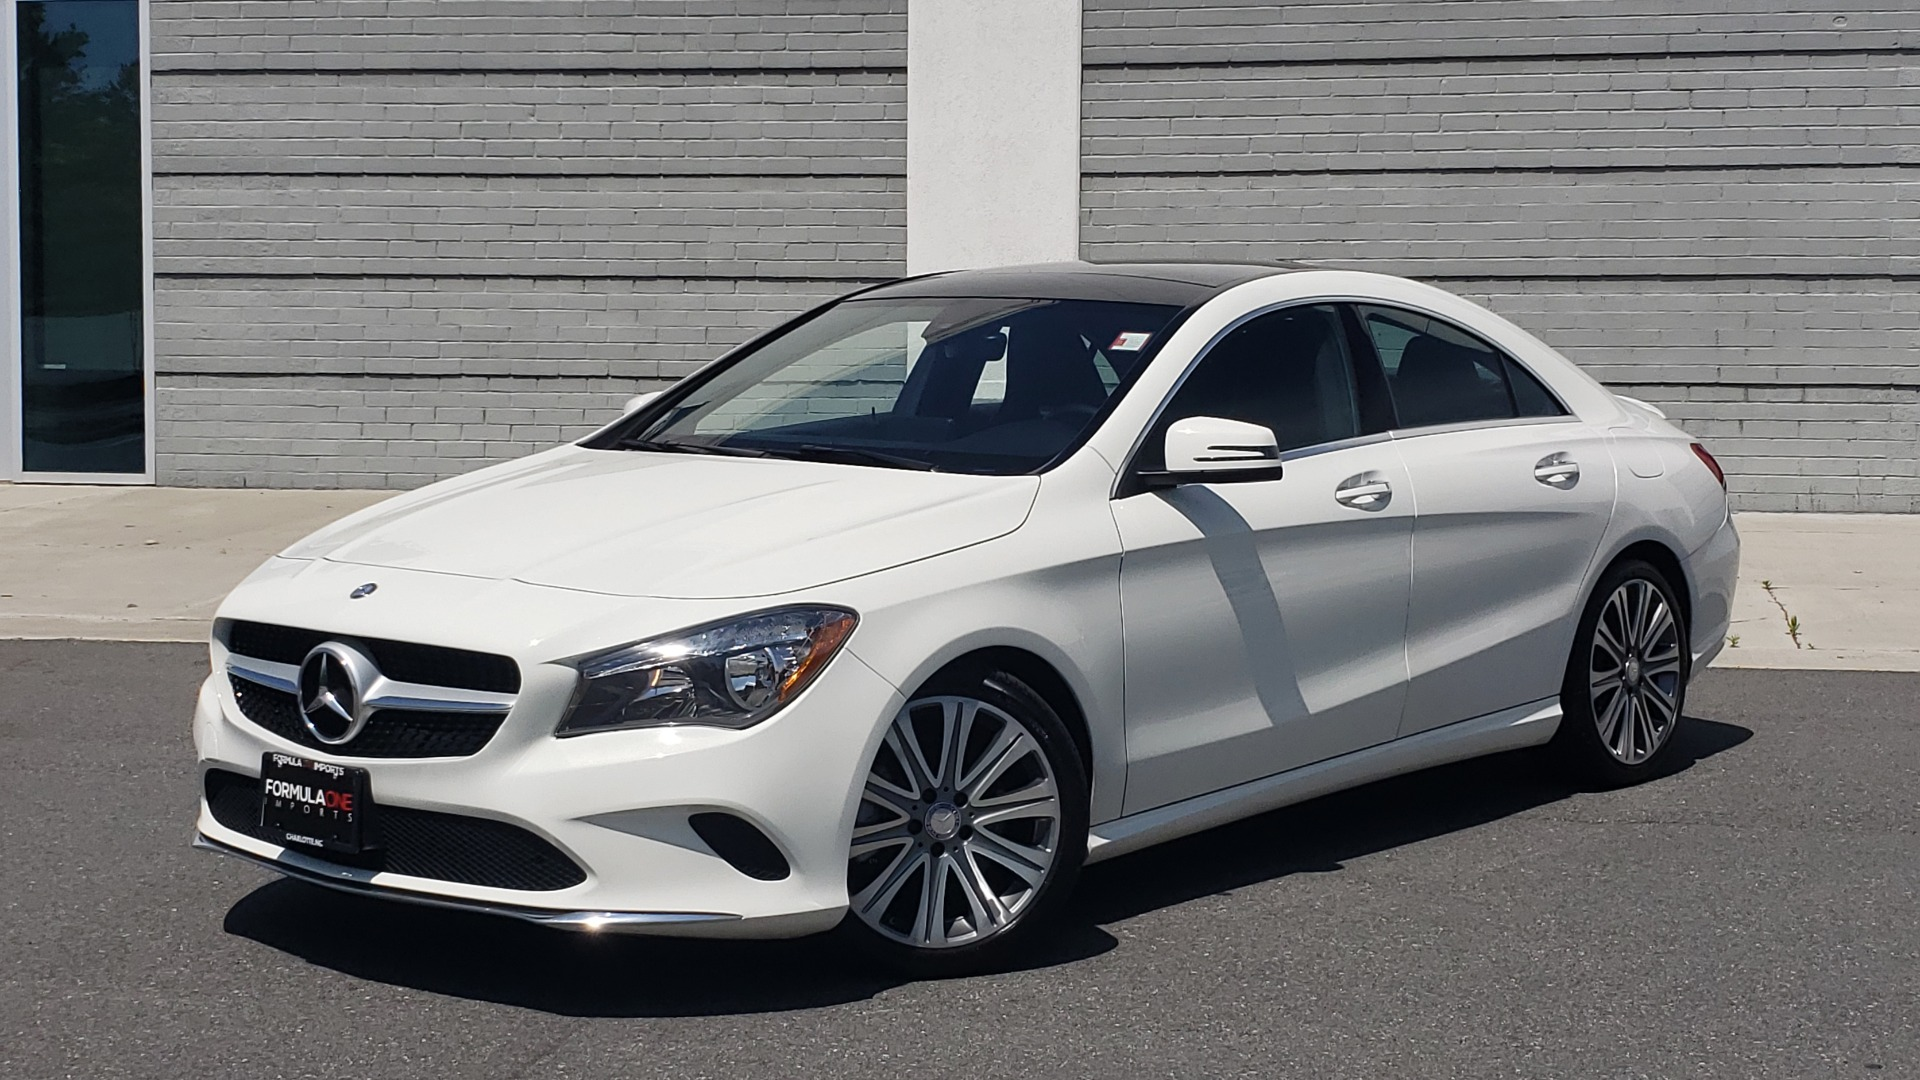 Used 2018 Mercedes-Benz CLA 250 4MATIC PREMIUM / PANO-ROOF / CONV PKG / APPLE / REARVIEW for sale $25,395 at Formula Imports in Charlotte NC 28227 1